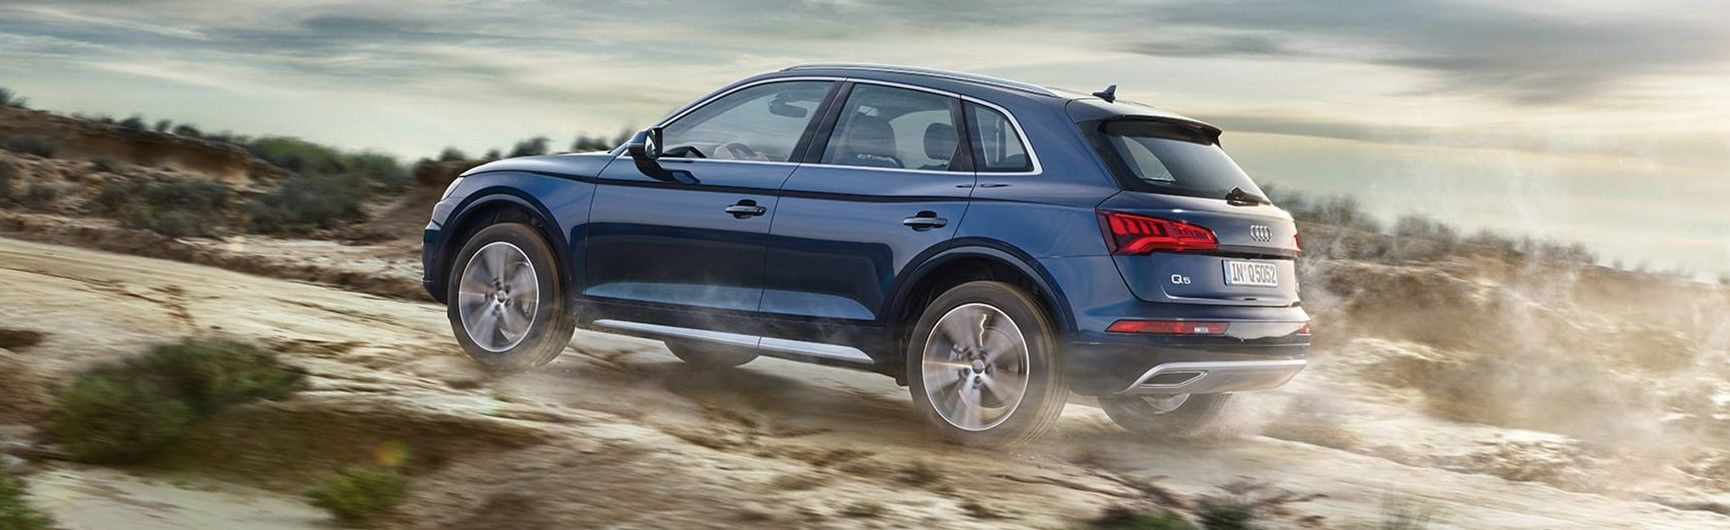 2019 audi sq5 blue in rainy weather